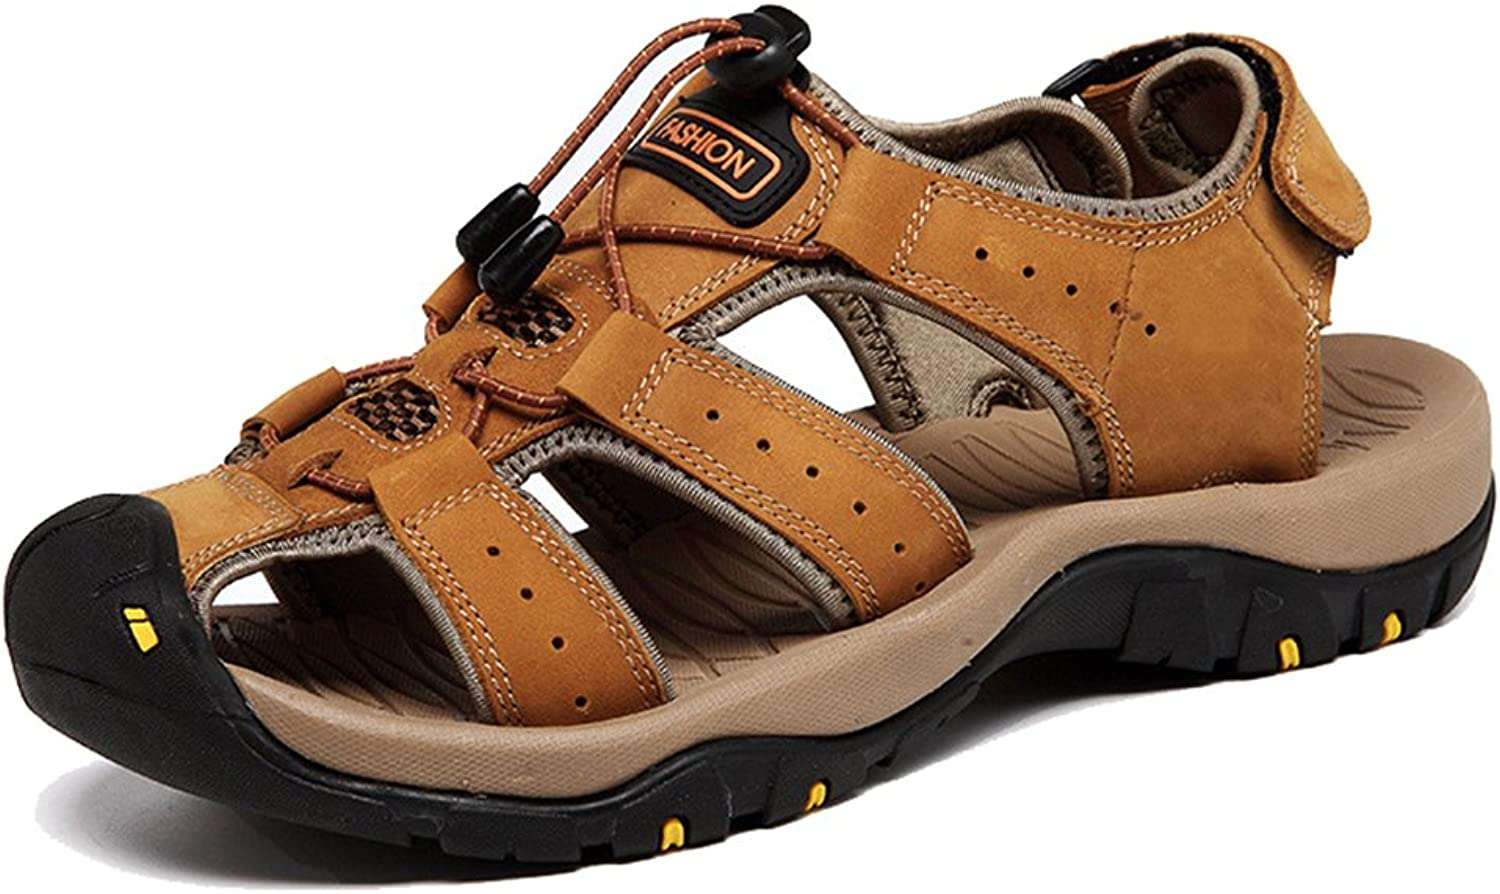 AGOWOO Women's Casual Leather Closed Toe Hiking Beach Sandals